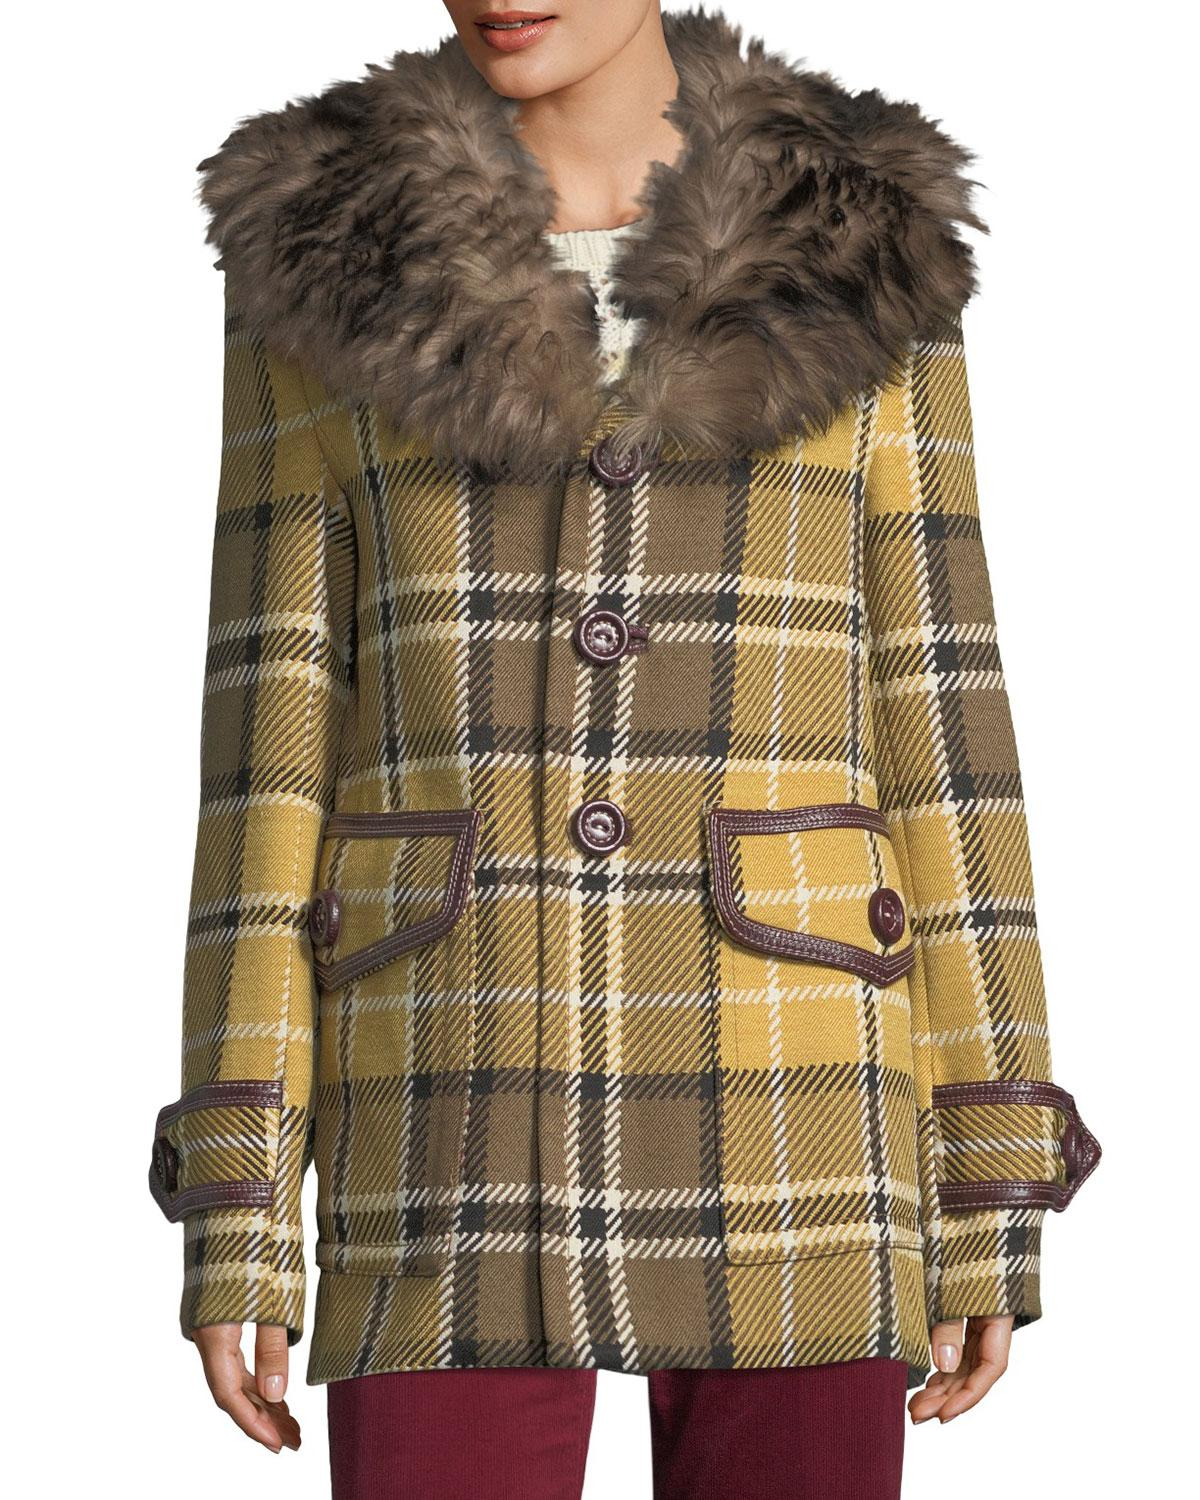 Marc Jacobs. Women's Plaid Coat With Shearling Fur Collar